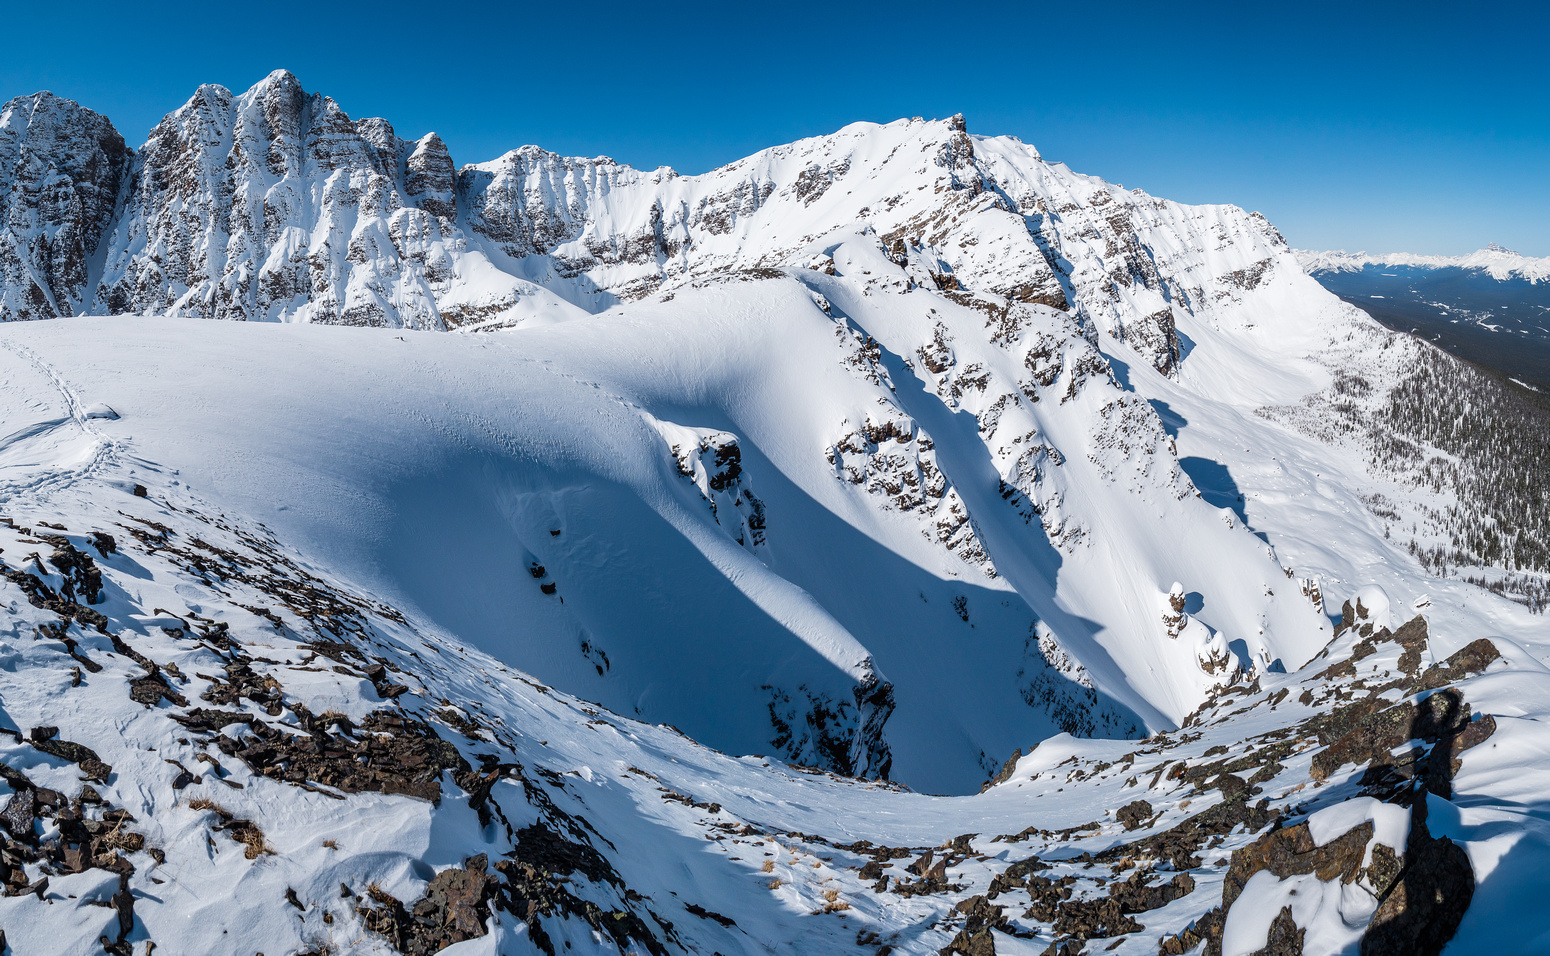 'm sure folks ski these chutes running down to the NE. Panorama Ridge is very impressive from this angle.